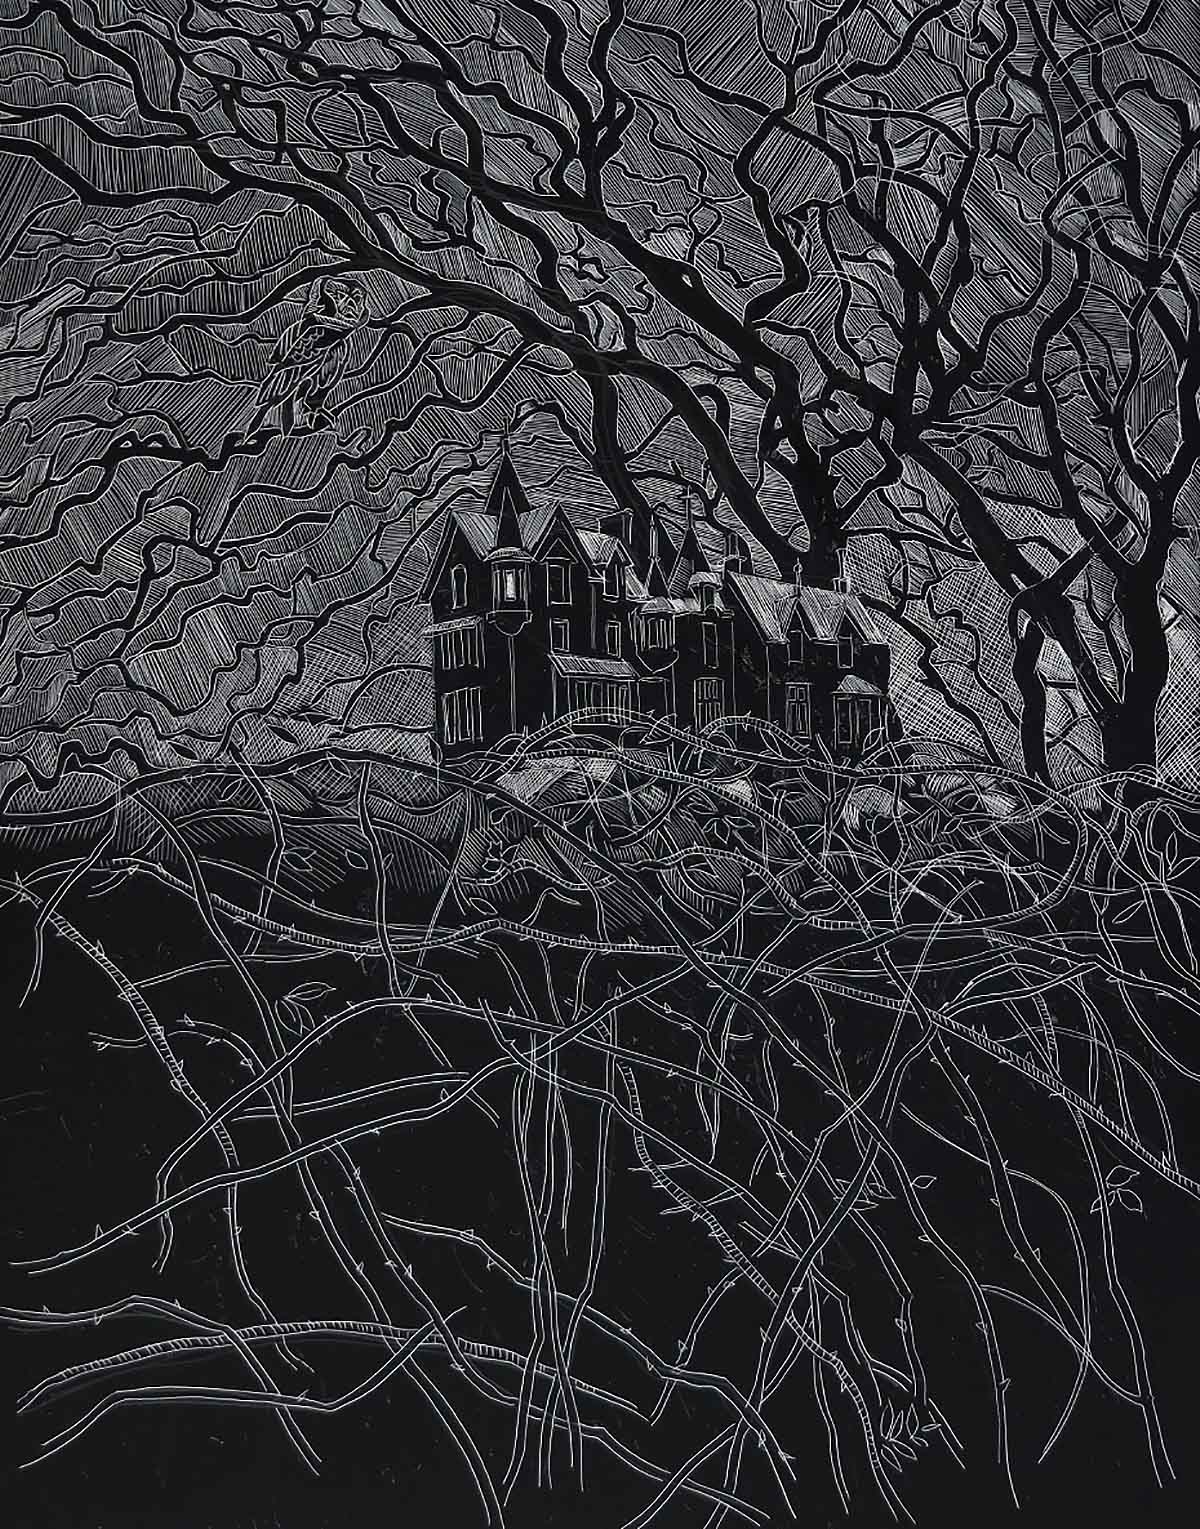 Lachlan Goudie, 'Sleeping Beauty's Castle', scraperboard